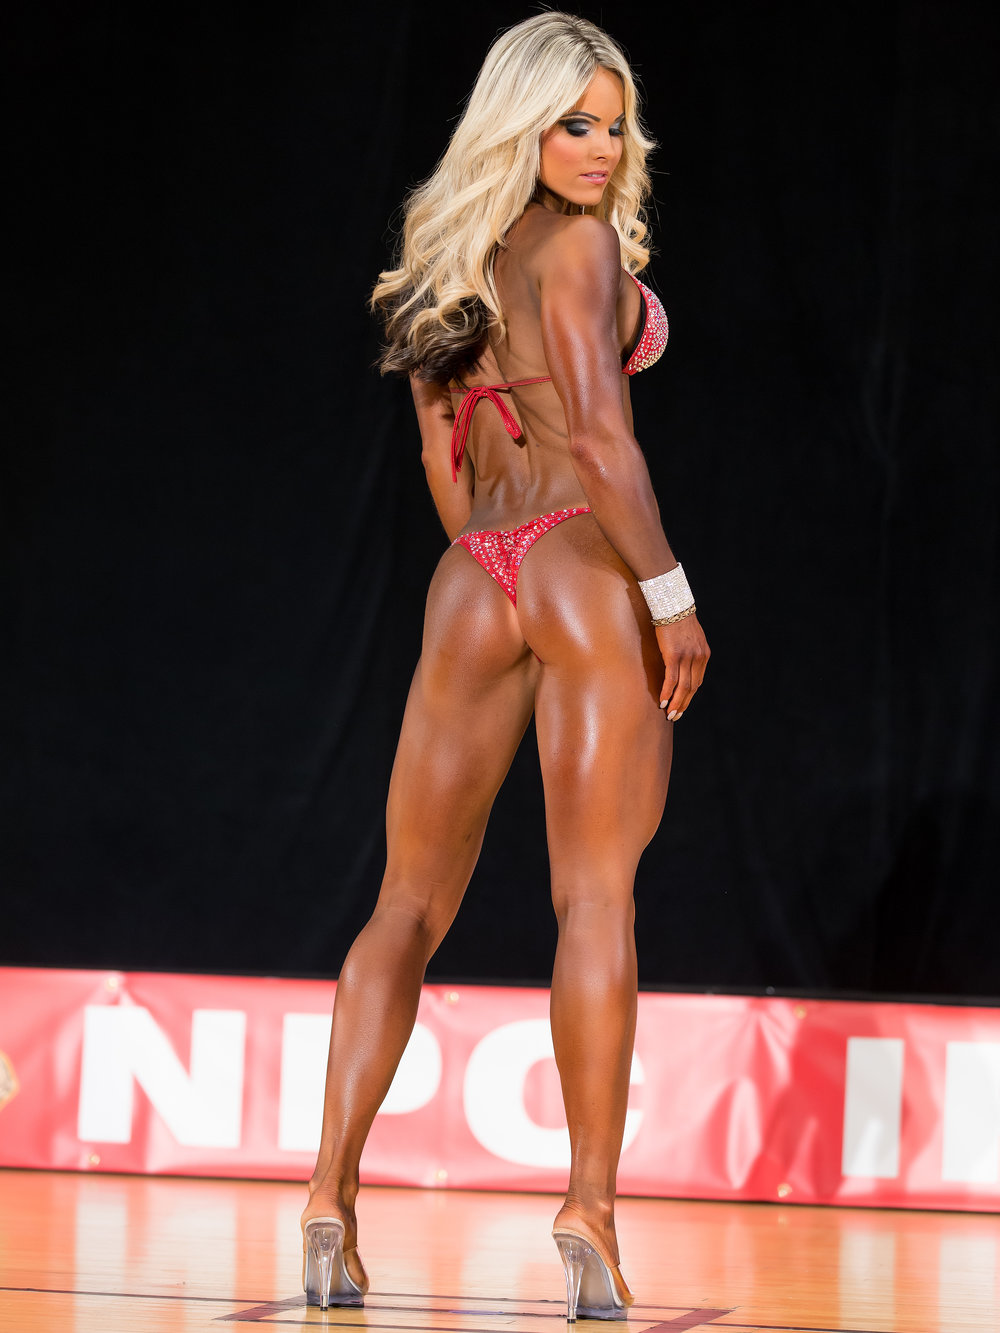 pro-fitness-photos-fitness-photography-npc02.jpg